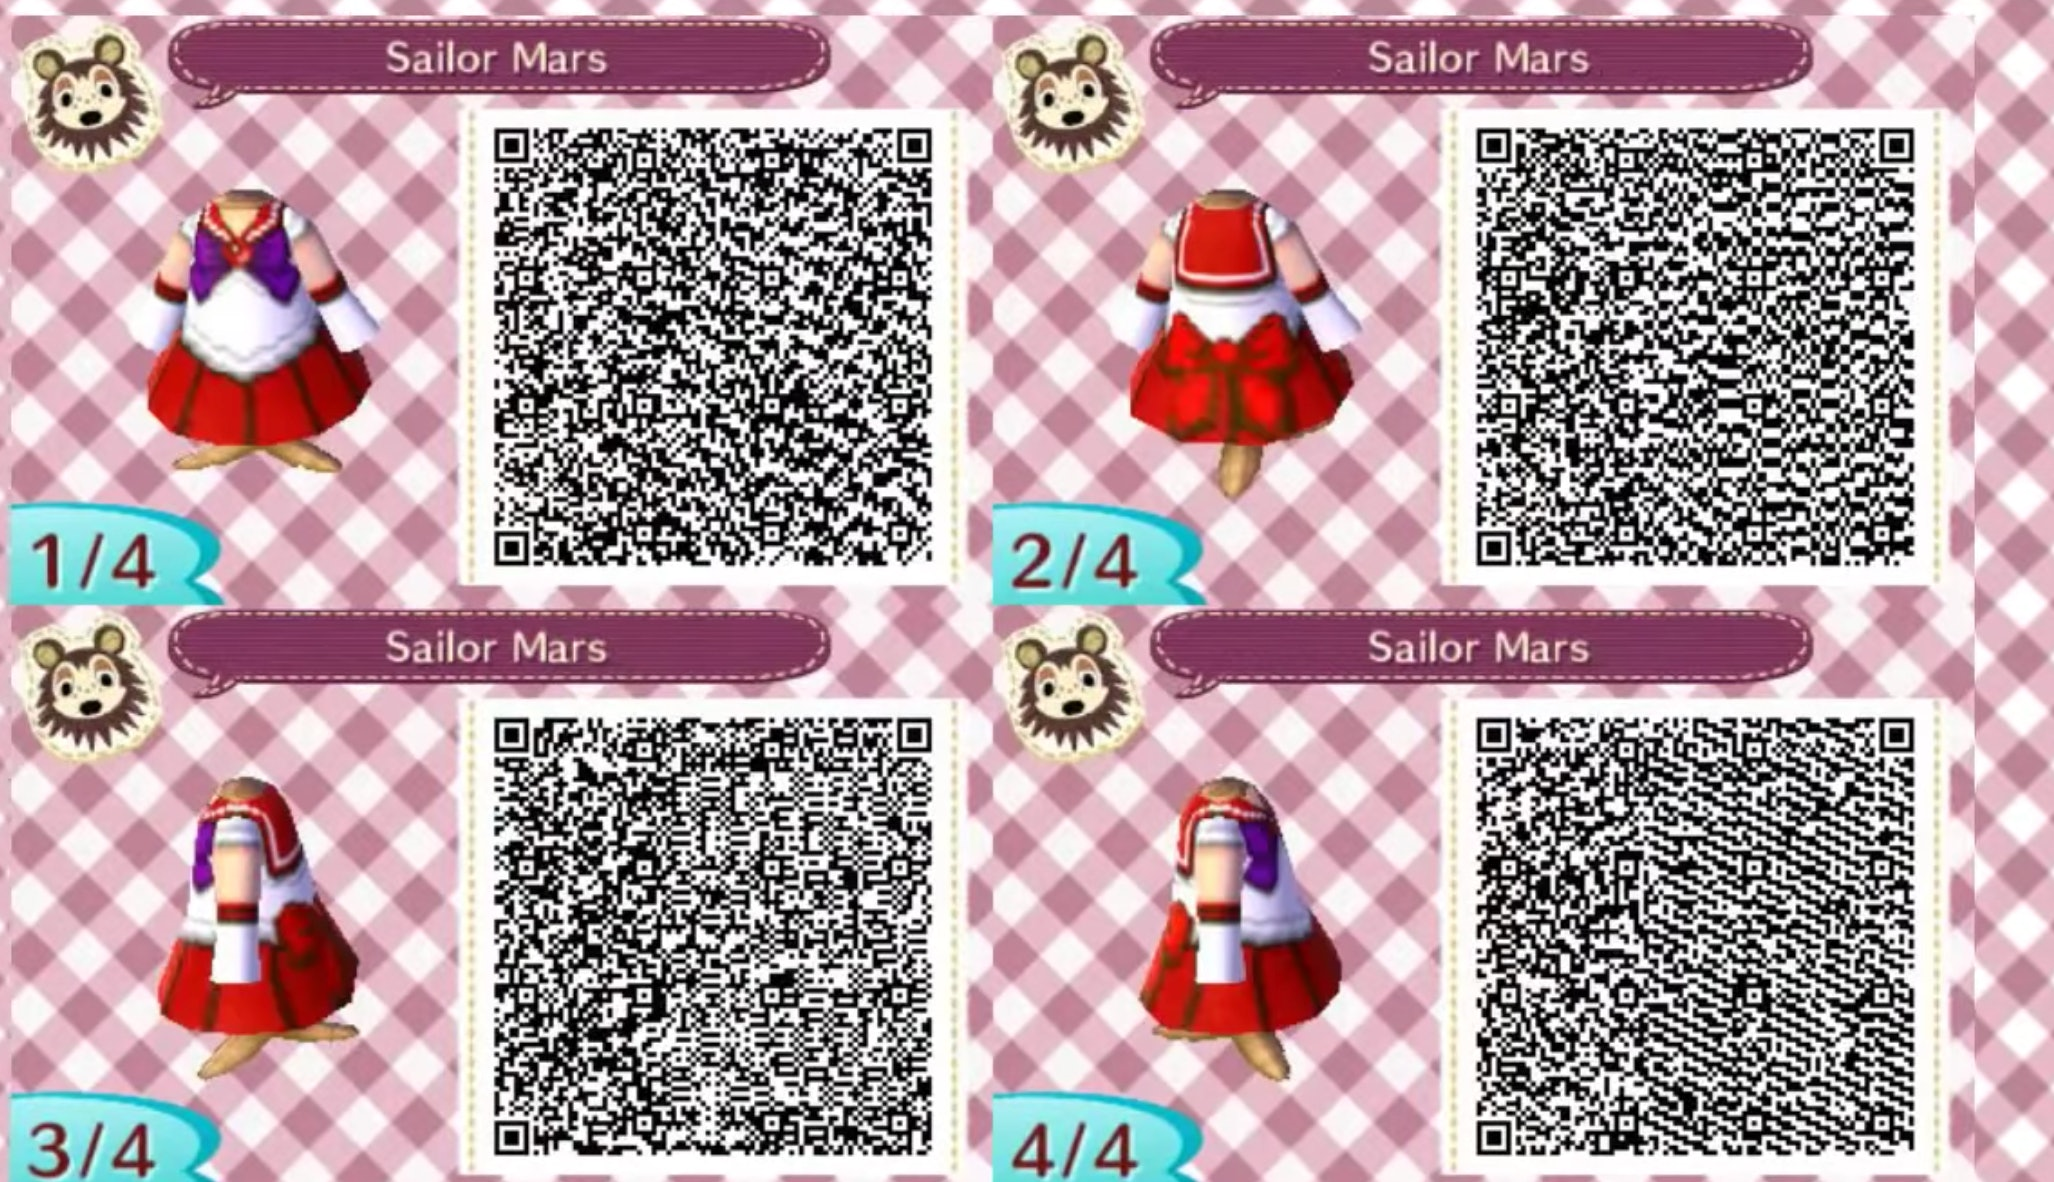 Animal Crossing New Horizons Designs 10 Qr Codes For Sailor